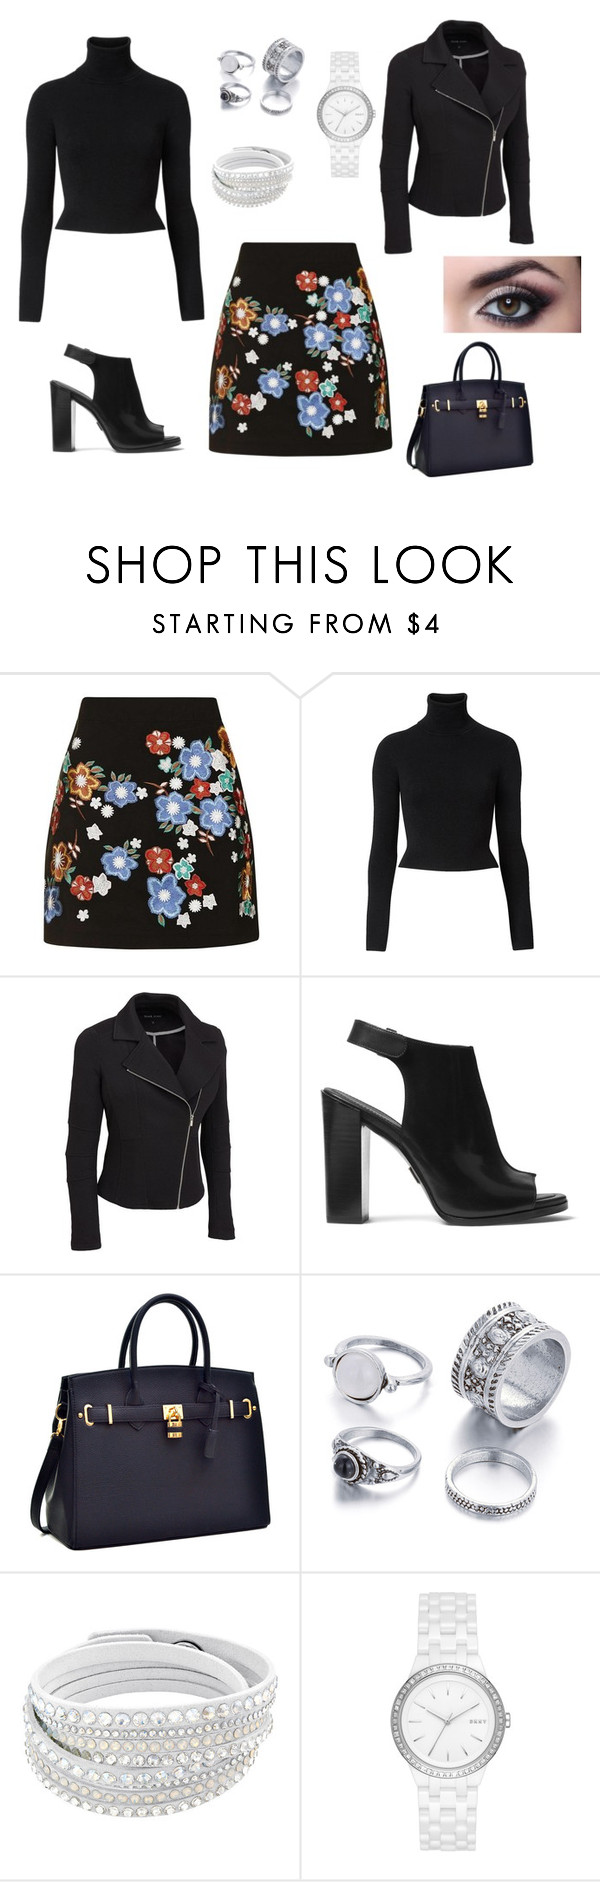 """Blackened flowers"" by margaret-ann-robinson on Polyvore featuring Topshop, Witchery, Michael Kors, DKNY and plus size clothing"